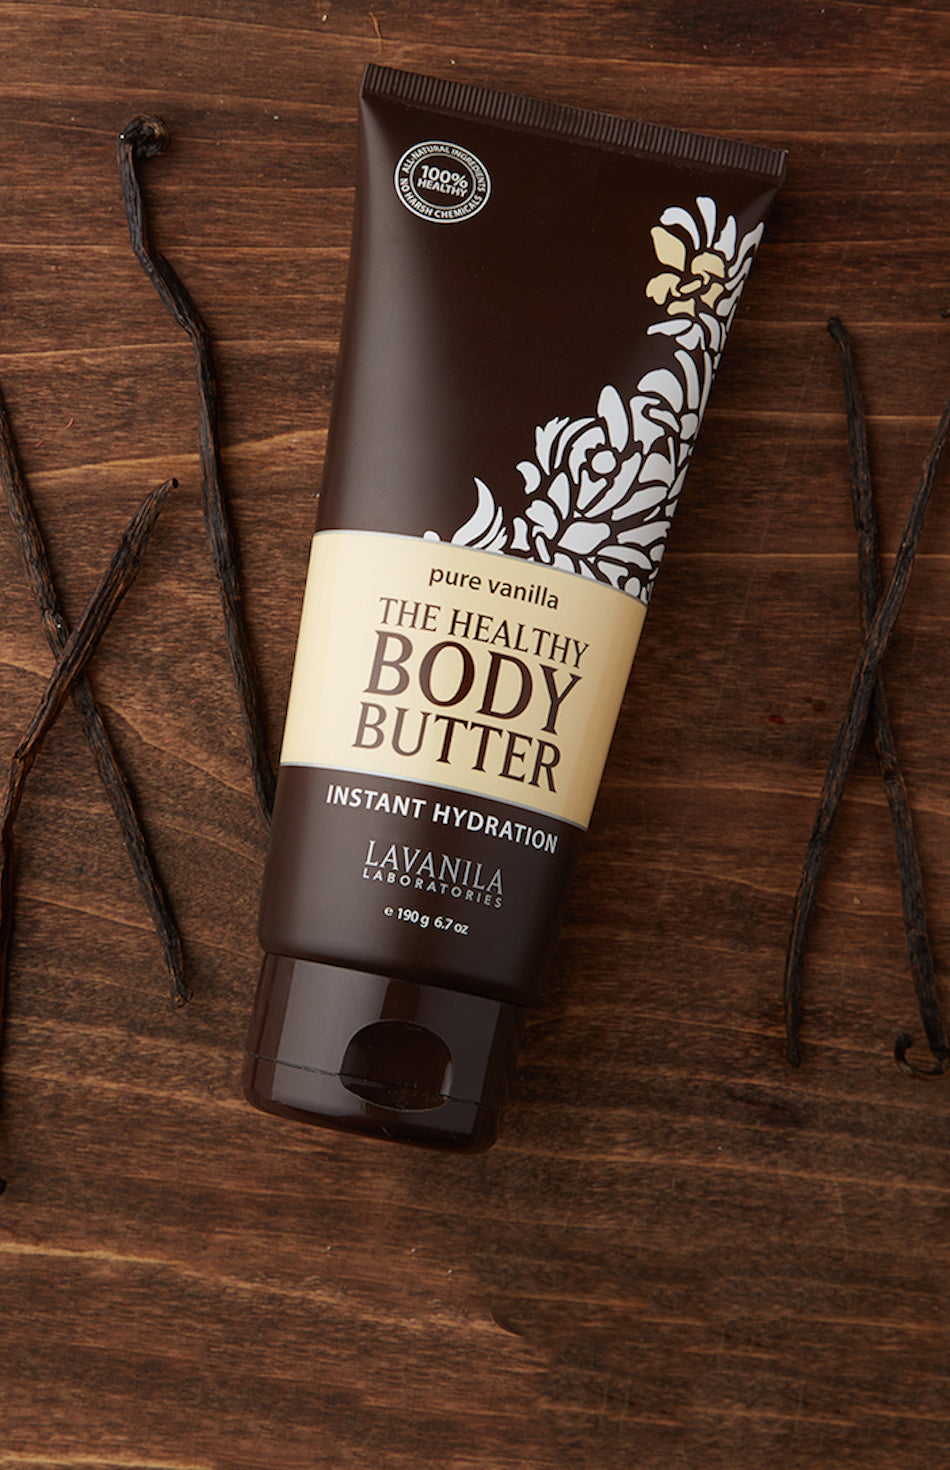 The Healthy Body Butter Pure Vanilla